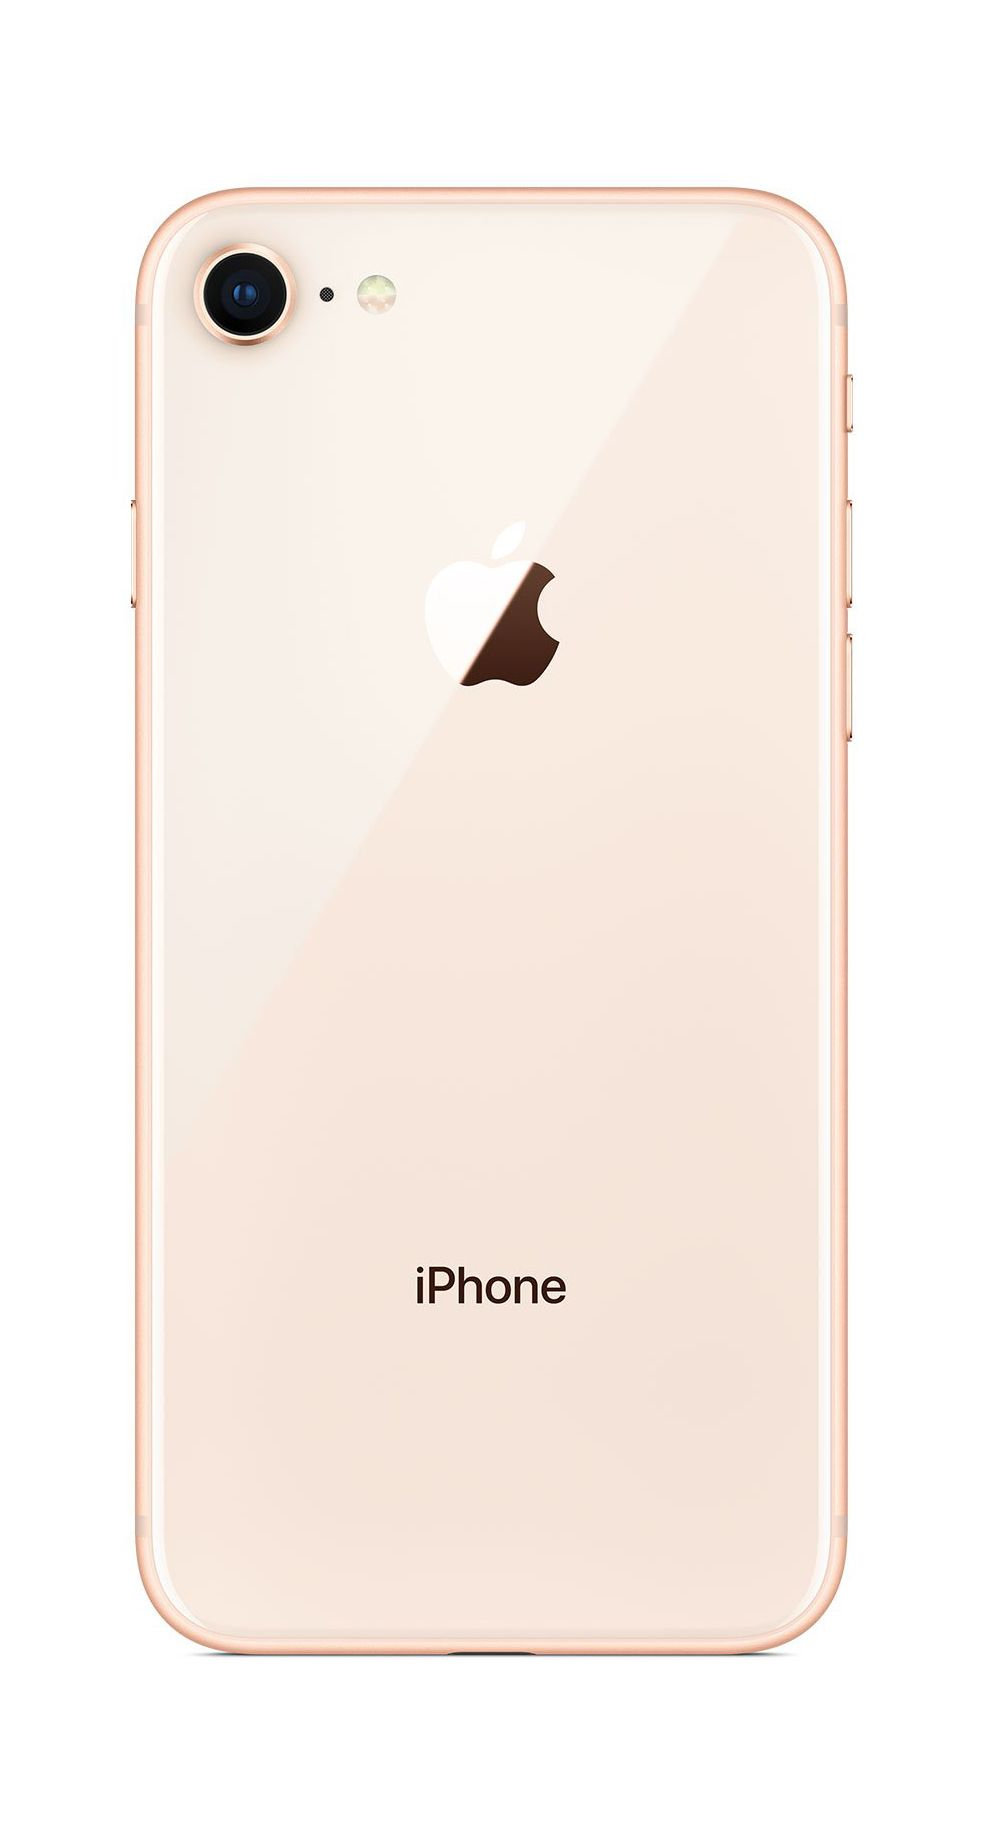 Apple Iphone 8 Gold Apple Copper Electronics Glossy Gold Iphone Minimalist Phone Iphone Minimalist Iphone Iphone 7plus Rose Gold